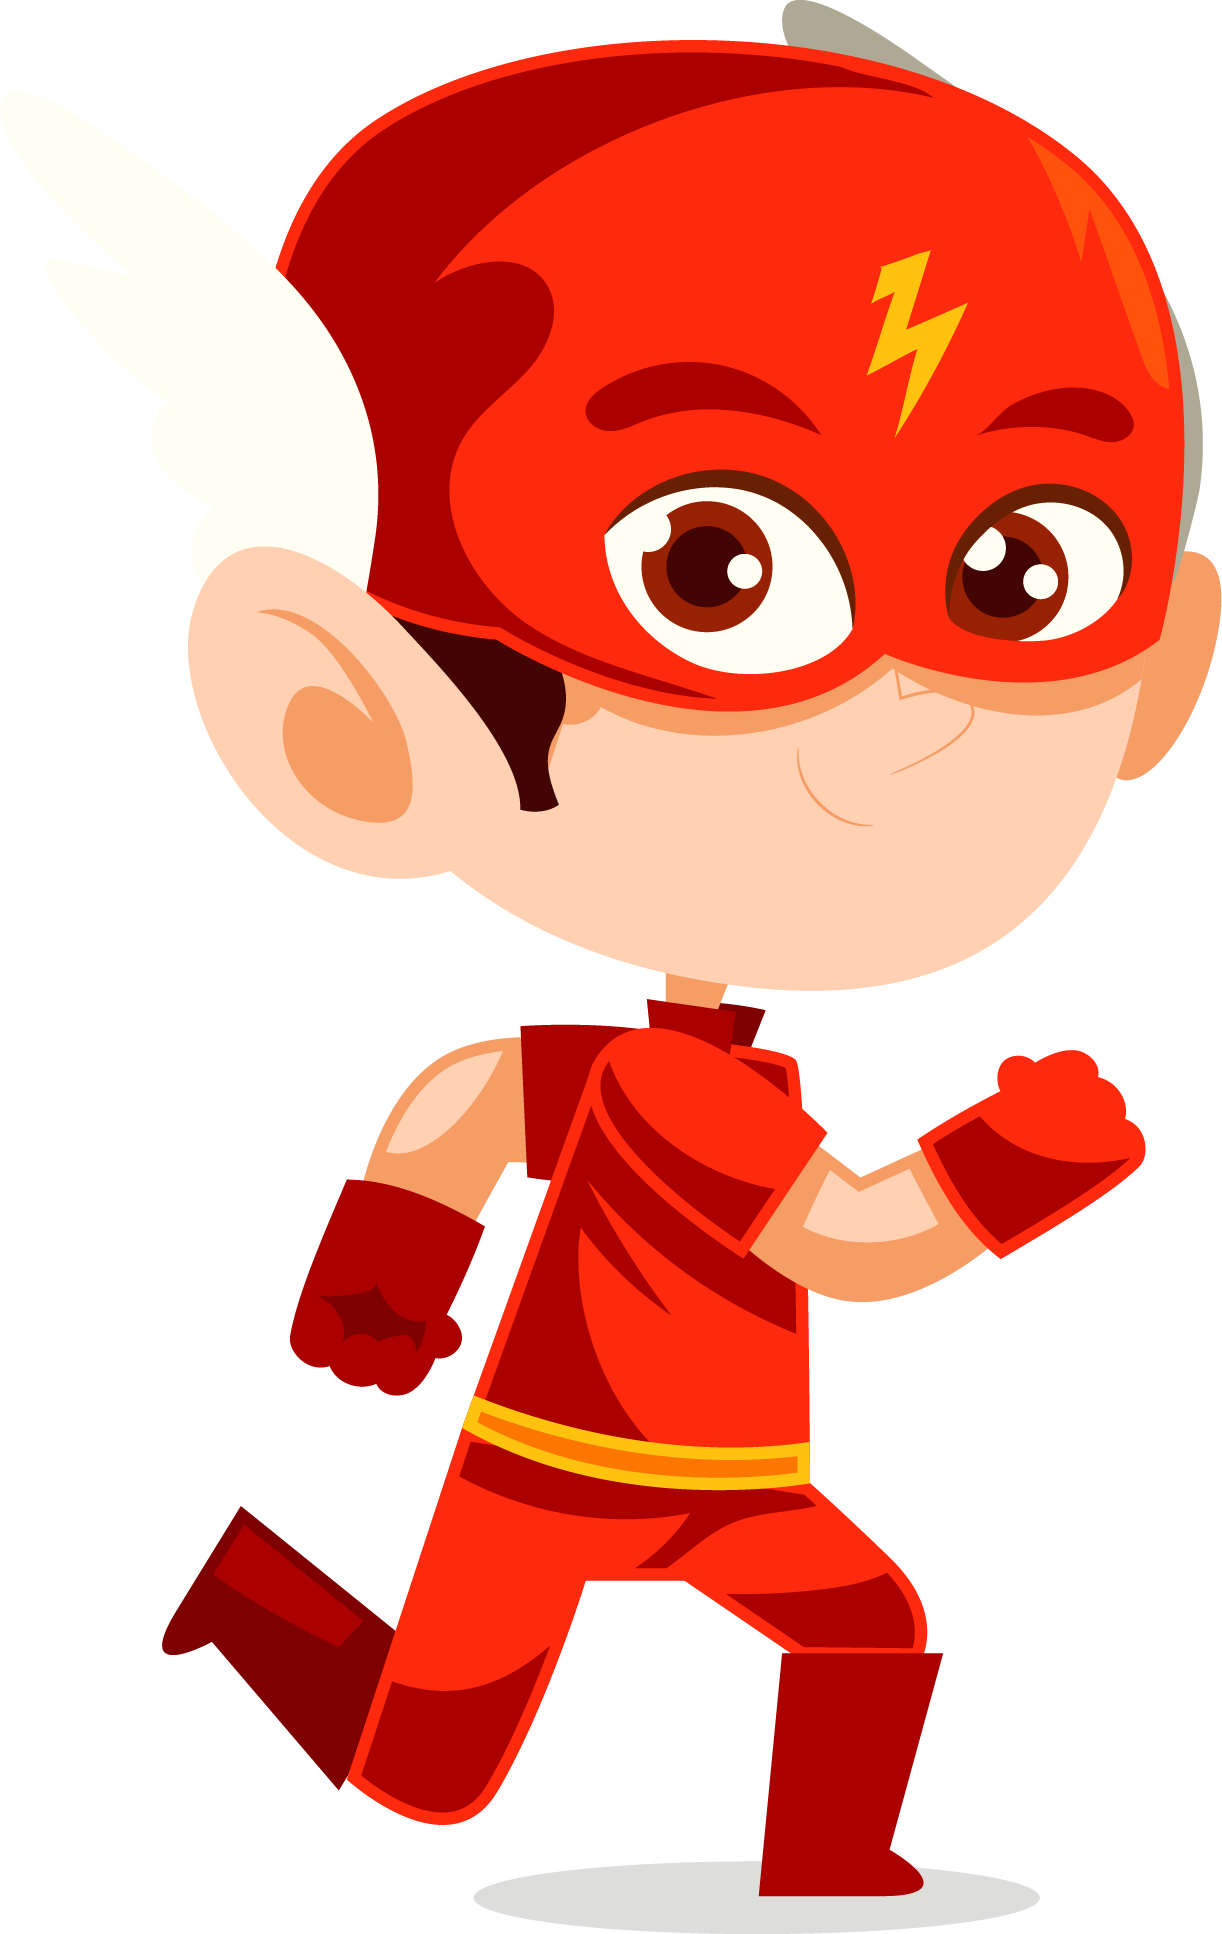 Boy superhero png. The flash images a